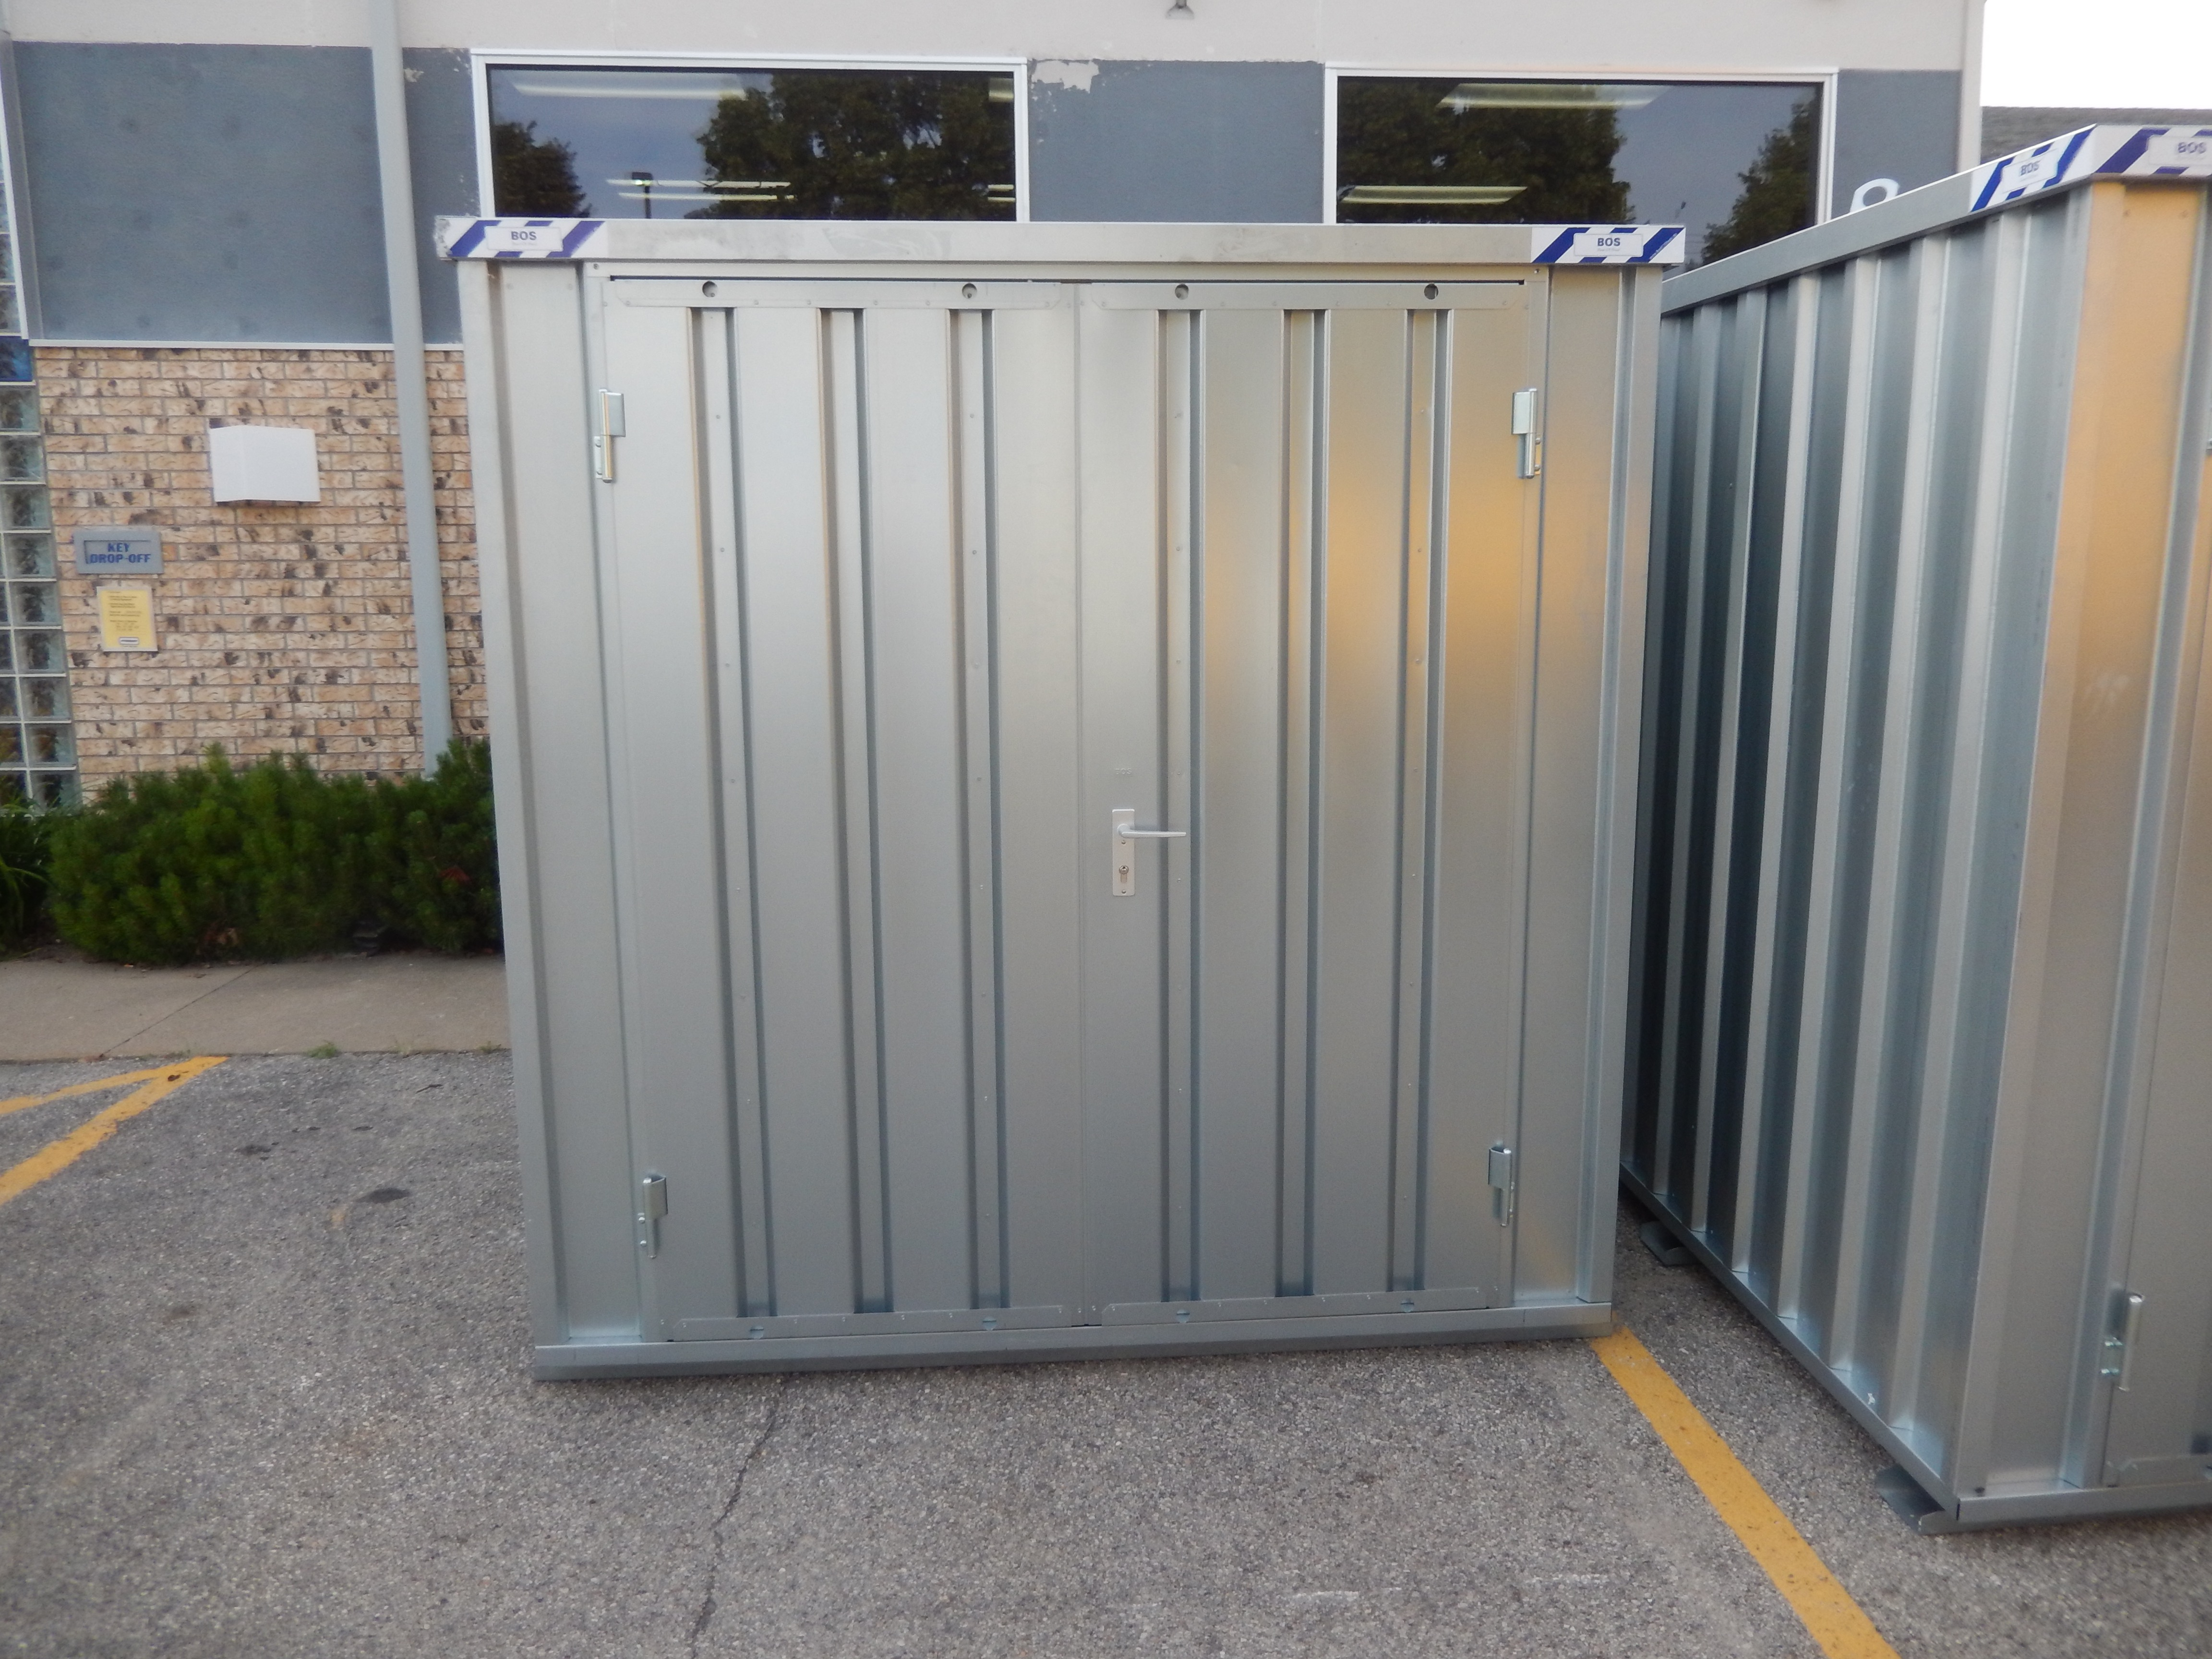 Small portable temporary steel storage shed with door closed